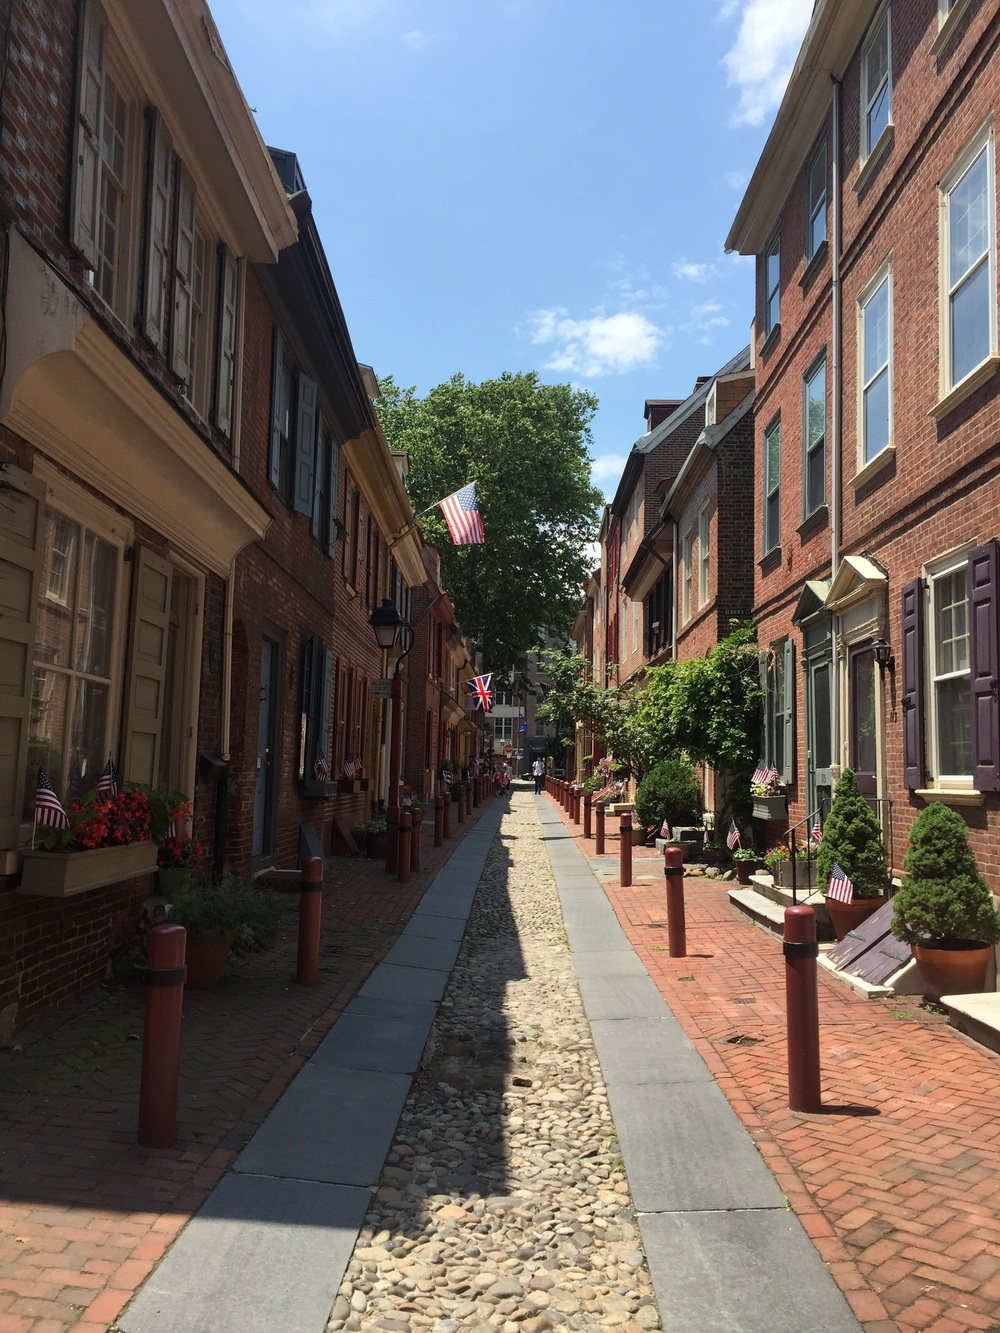 Elfreth' Alley - the oldest continually residential street in America